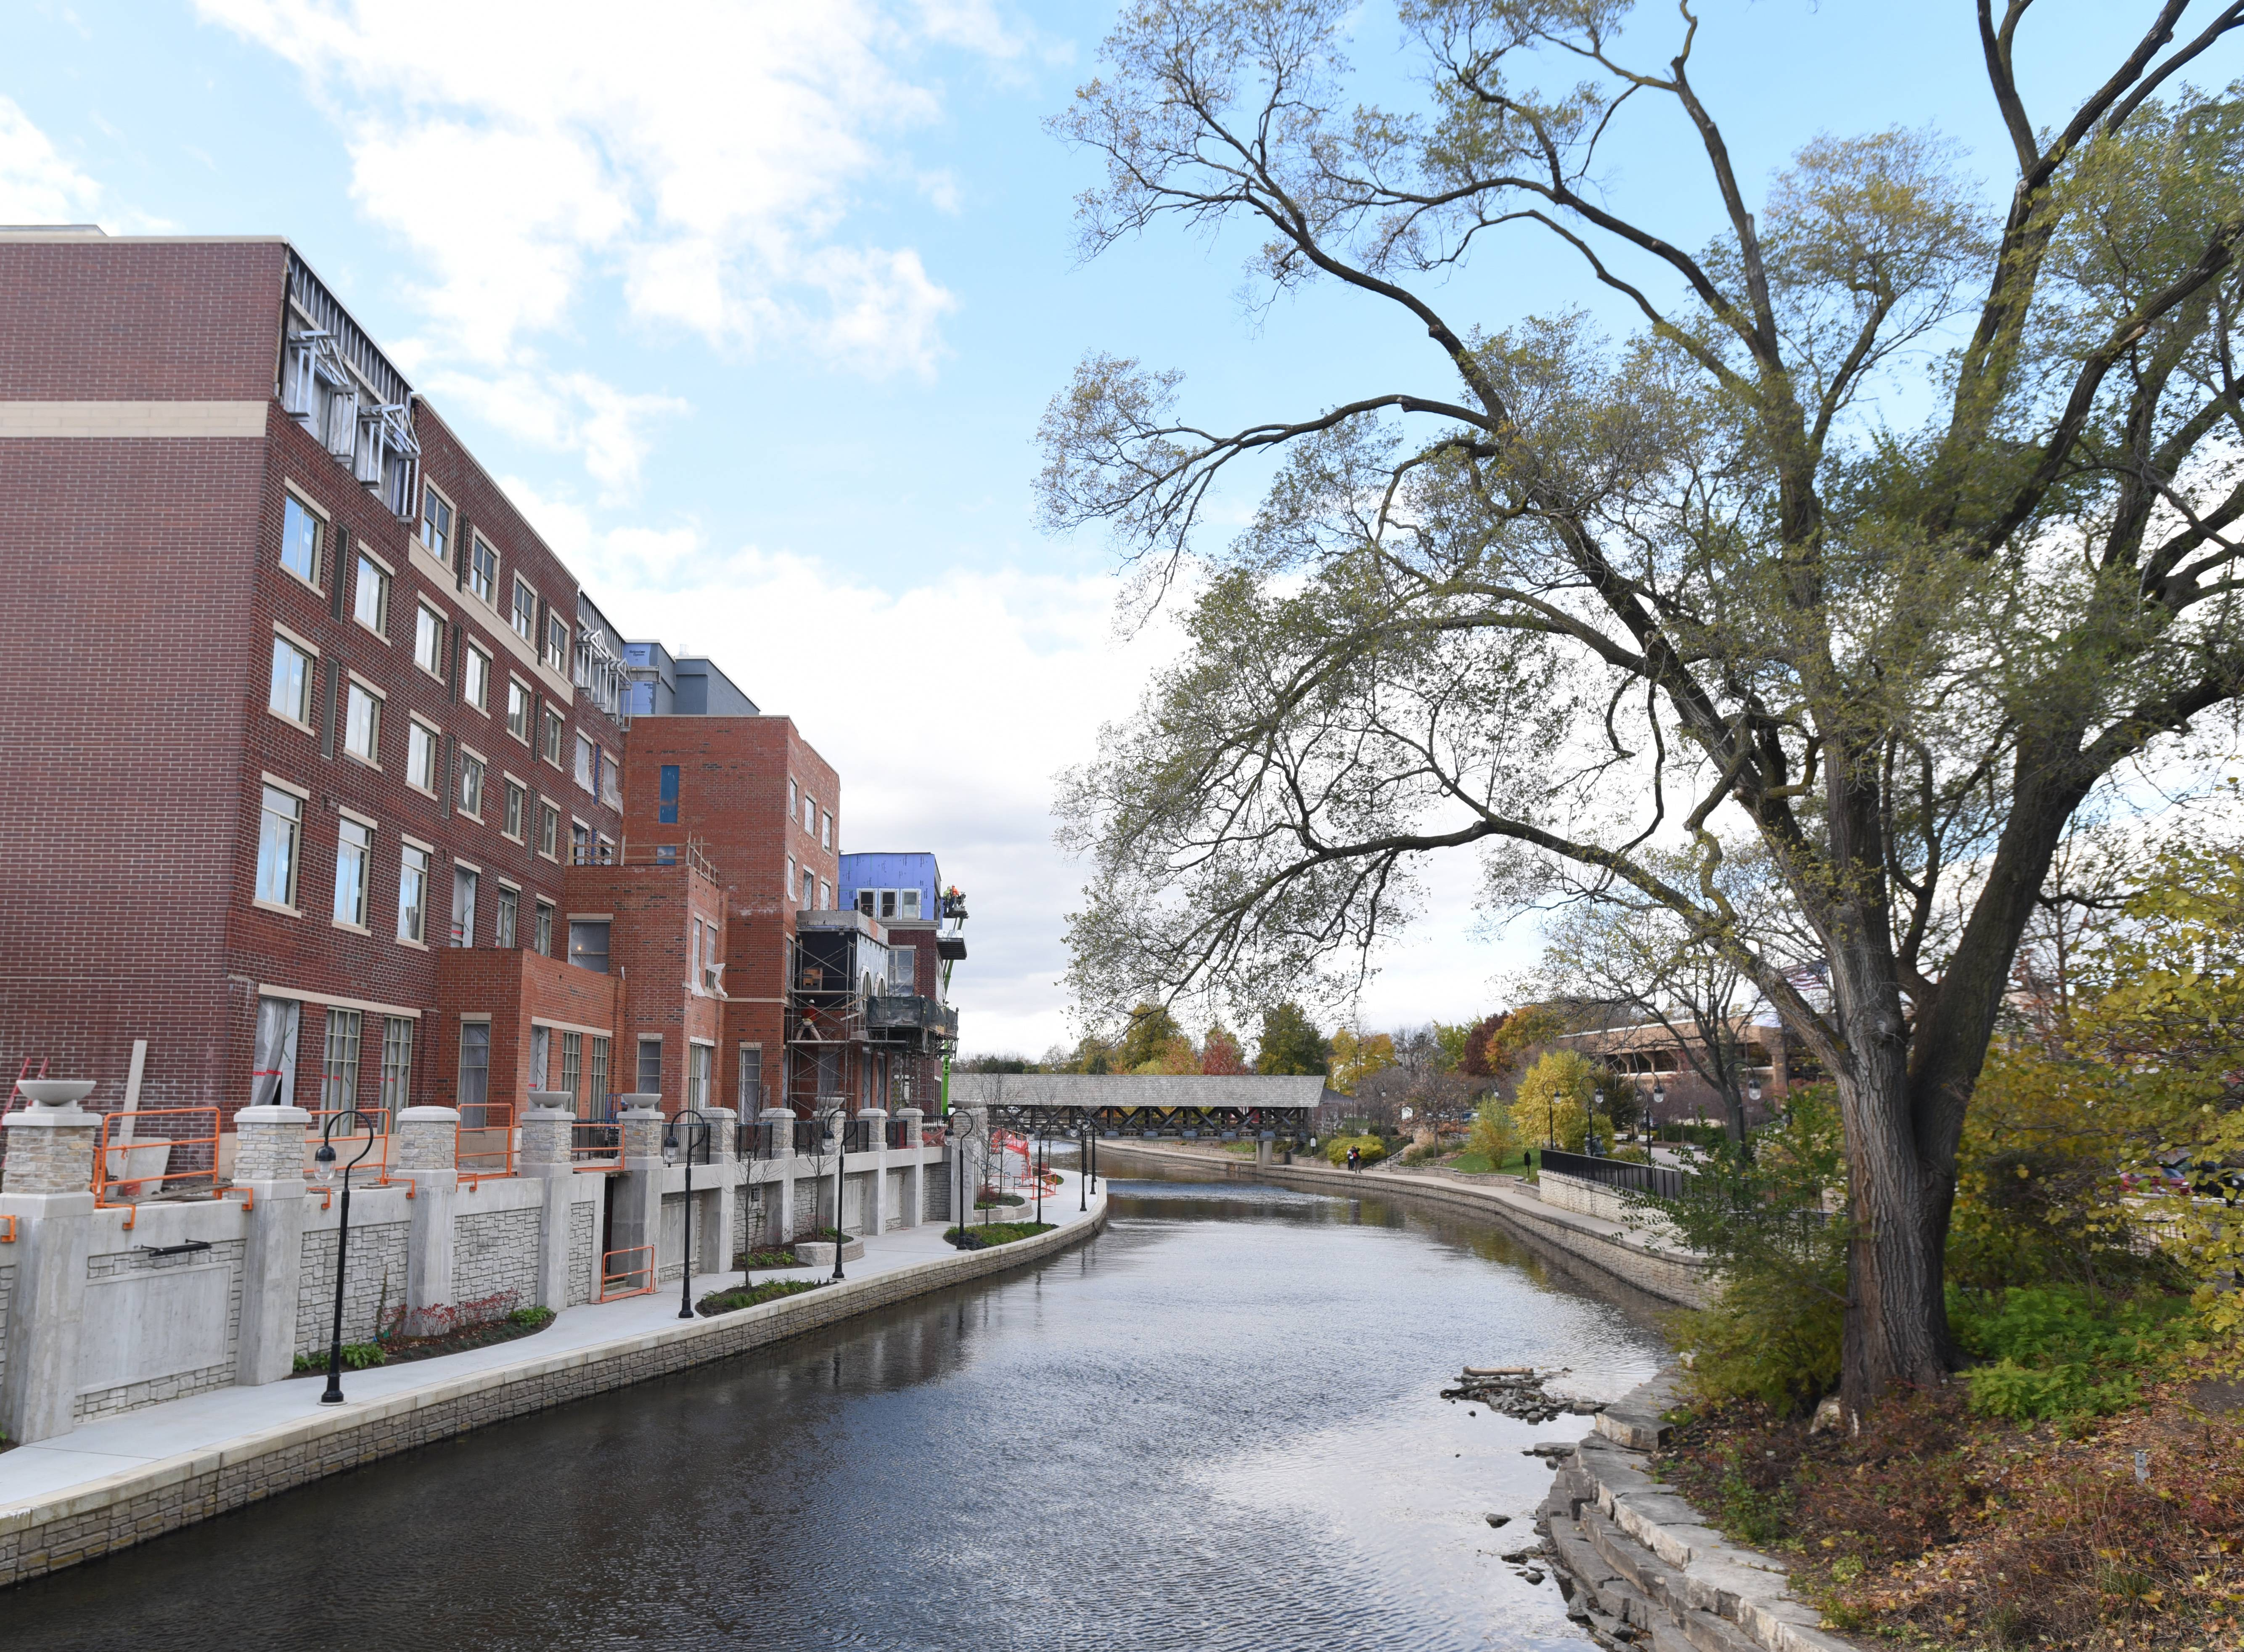 Hotel Indigo has become a hospitality destination in downtown Naperville.